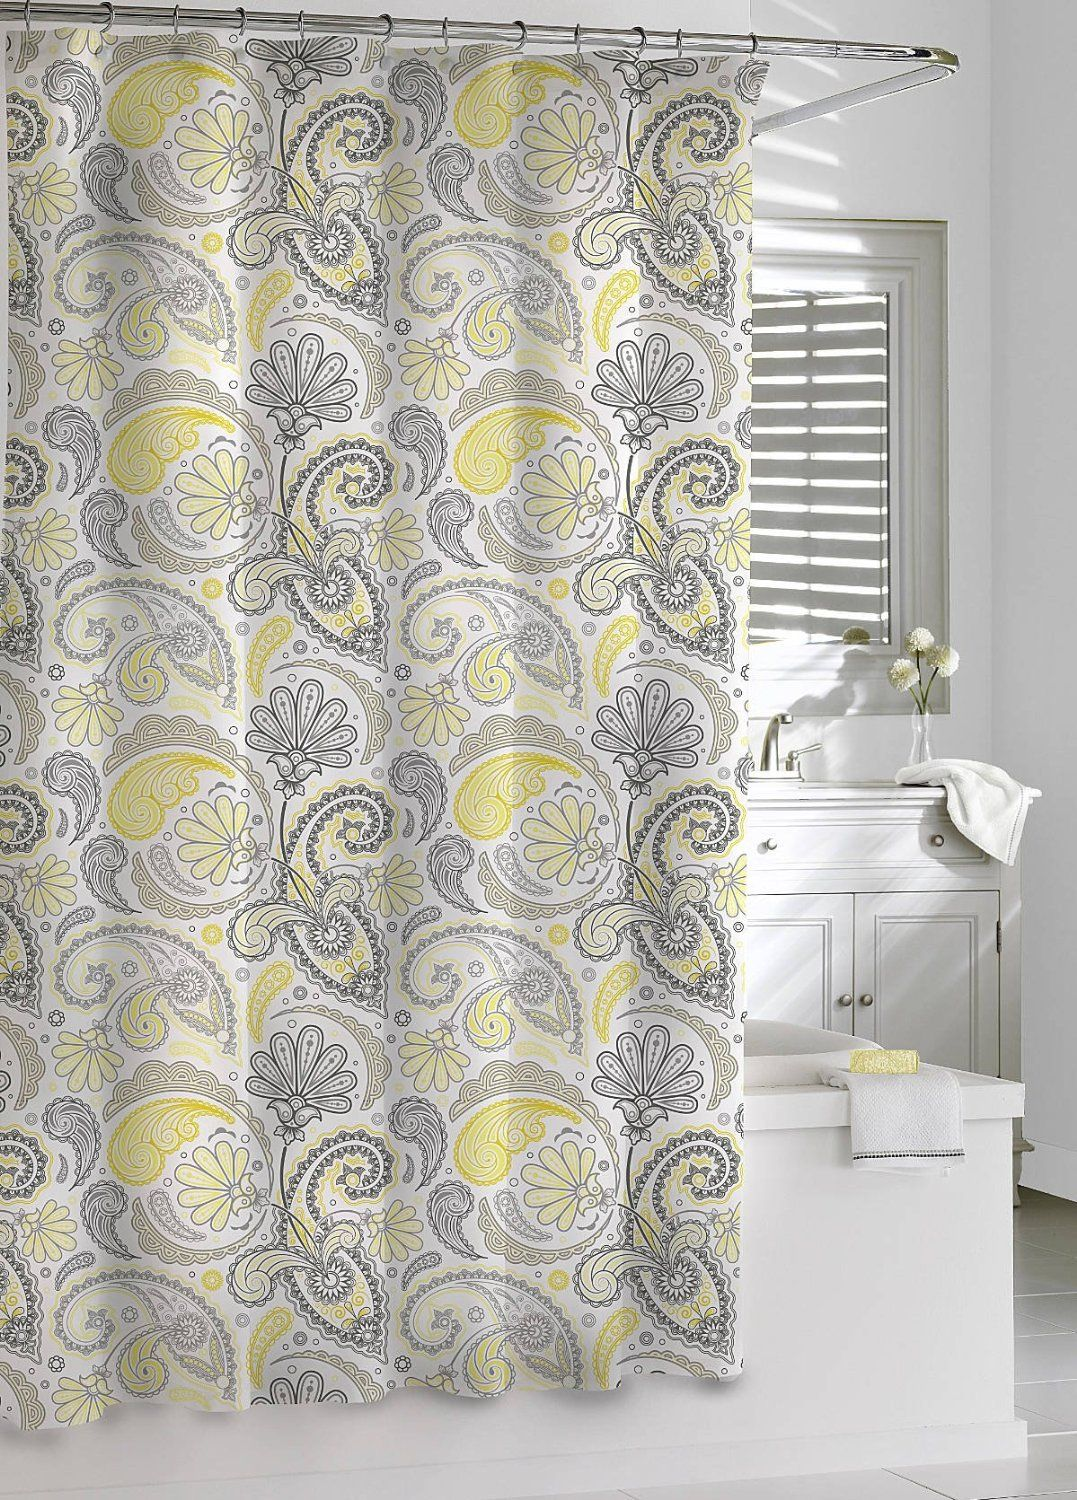 Amazon.com - Kassatex Paisley Shower Curtain, Yellow/Grey, 72 by 72 ...